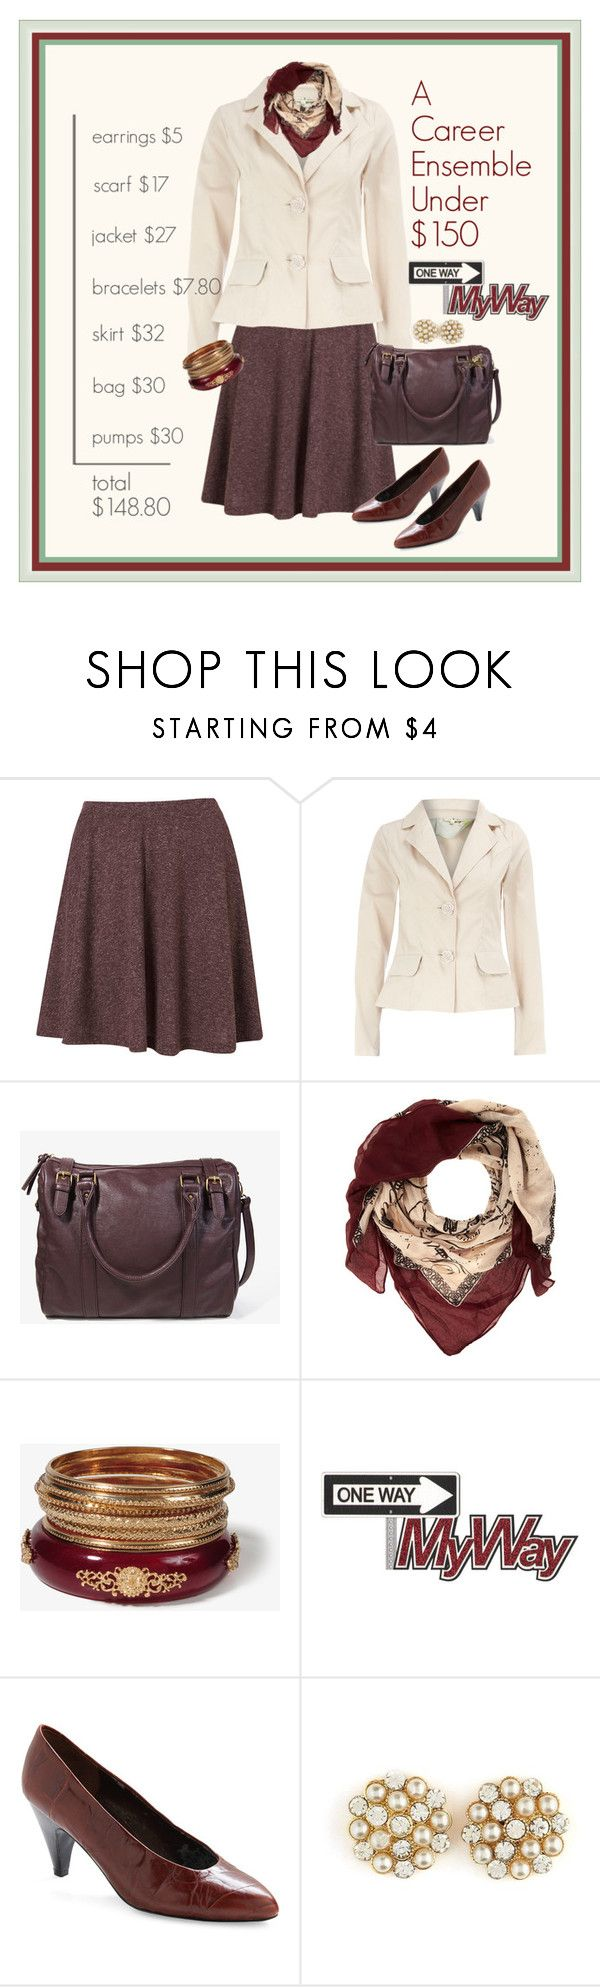 """""""Contest: A Career Ensemble Under $150"""" by halebugg ❤ liked on Polyvore featuring Topshop, Dorothy Perkins, Forever 21, Charlotte Russe, gold bangles, pearl earrings, leatherette, forever 21, oxblood skirt and wine bracelet"""